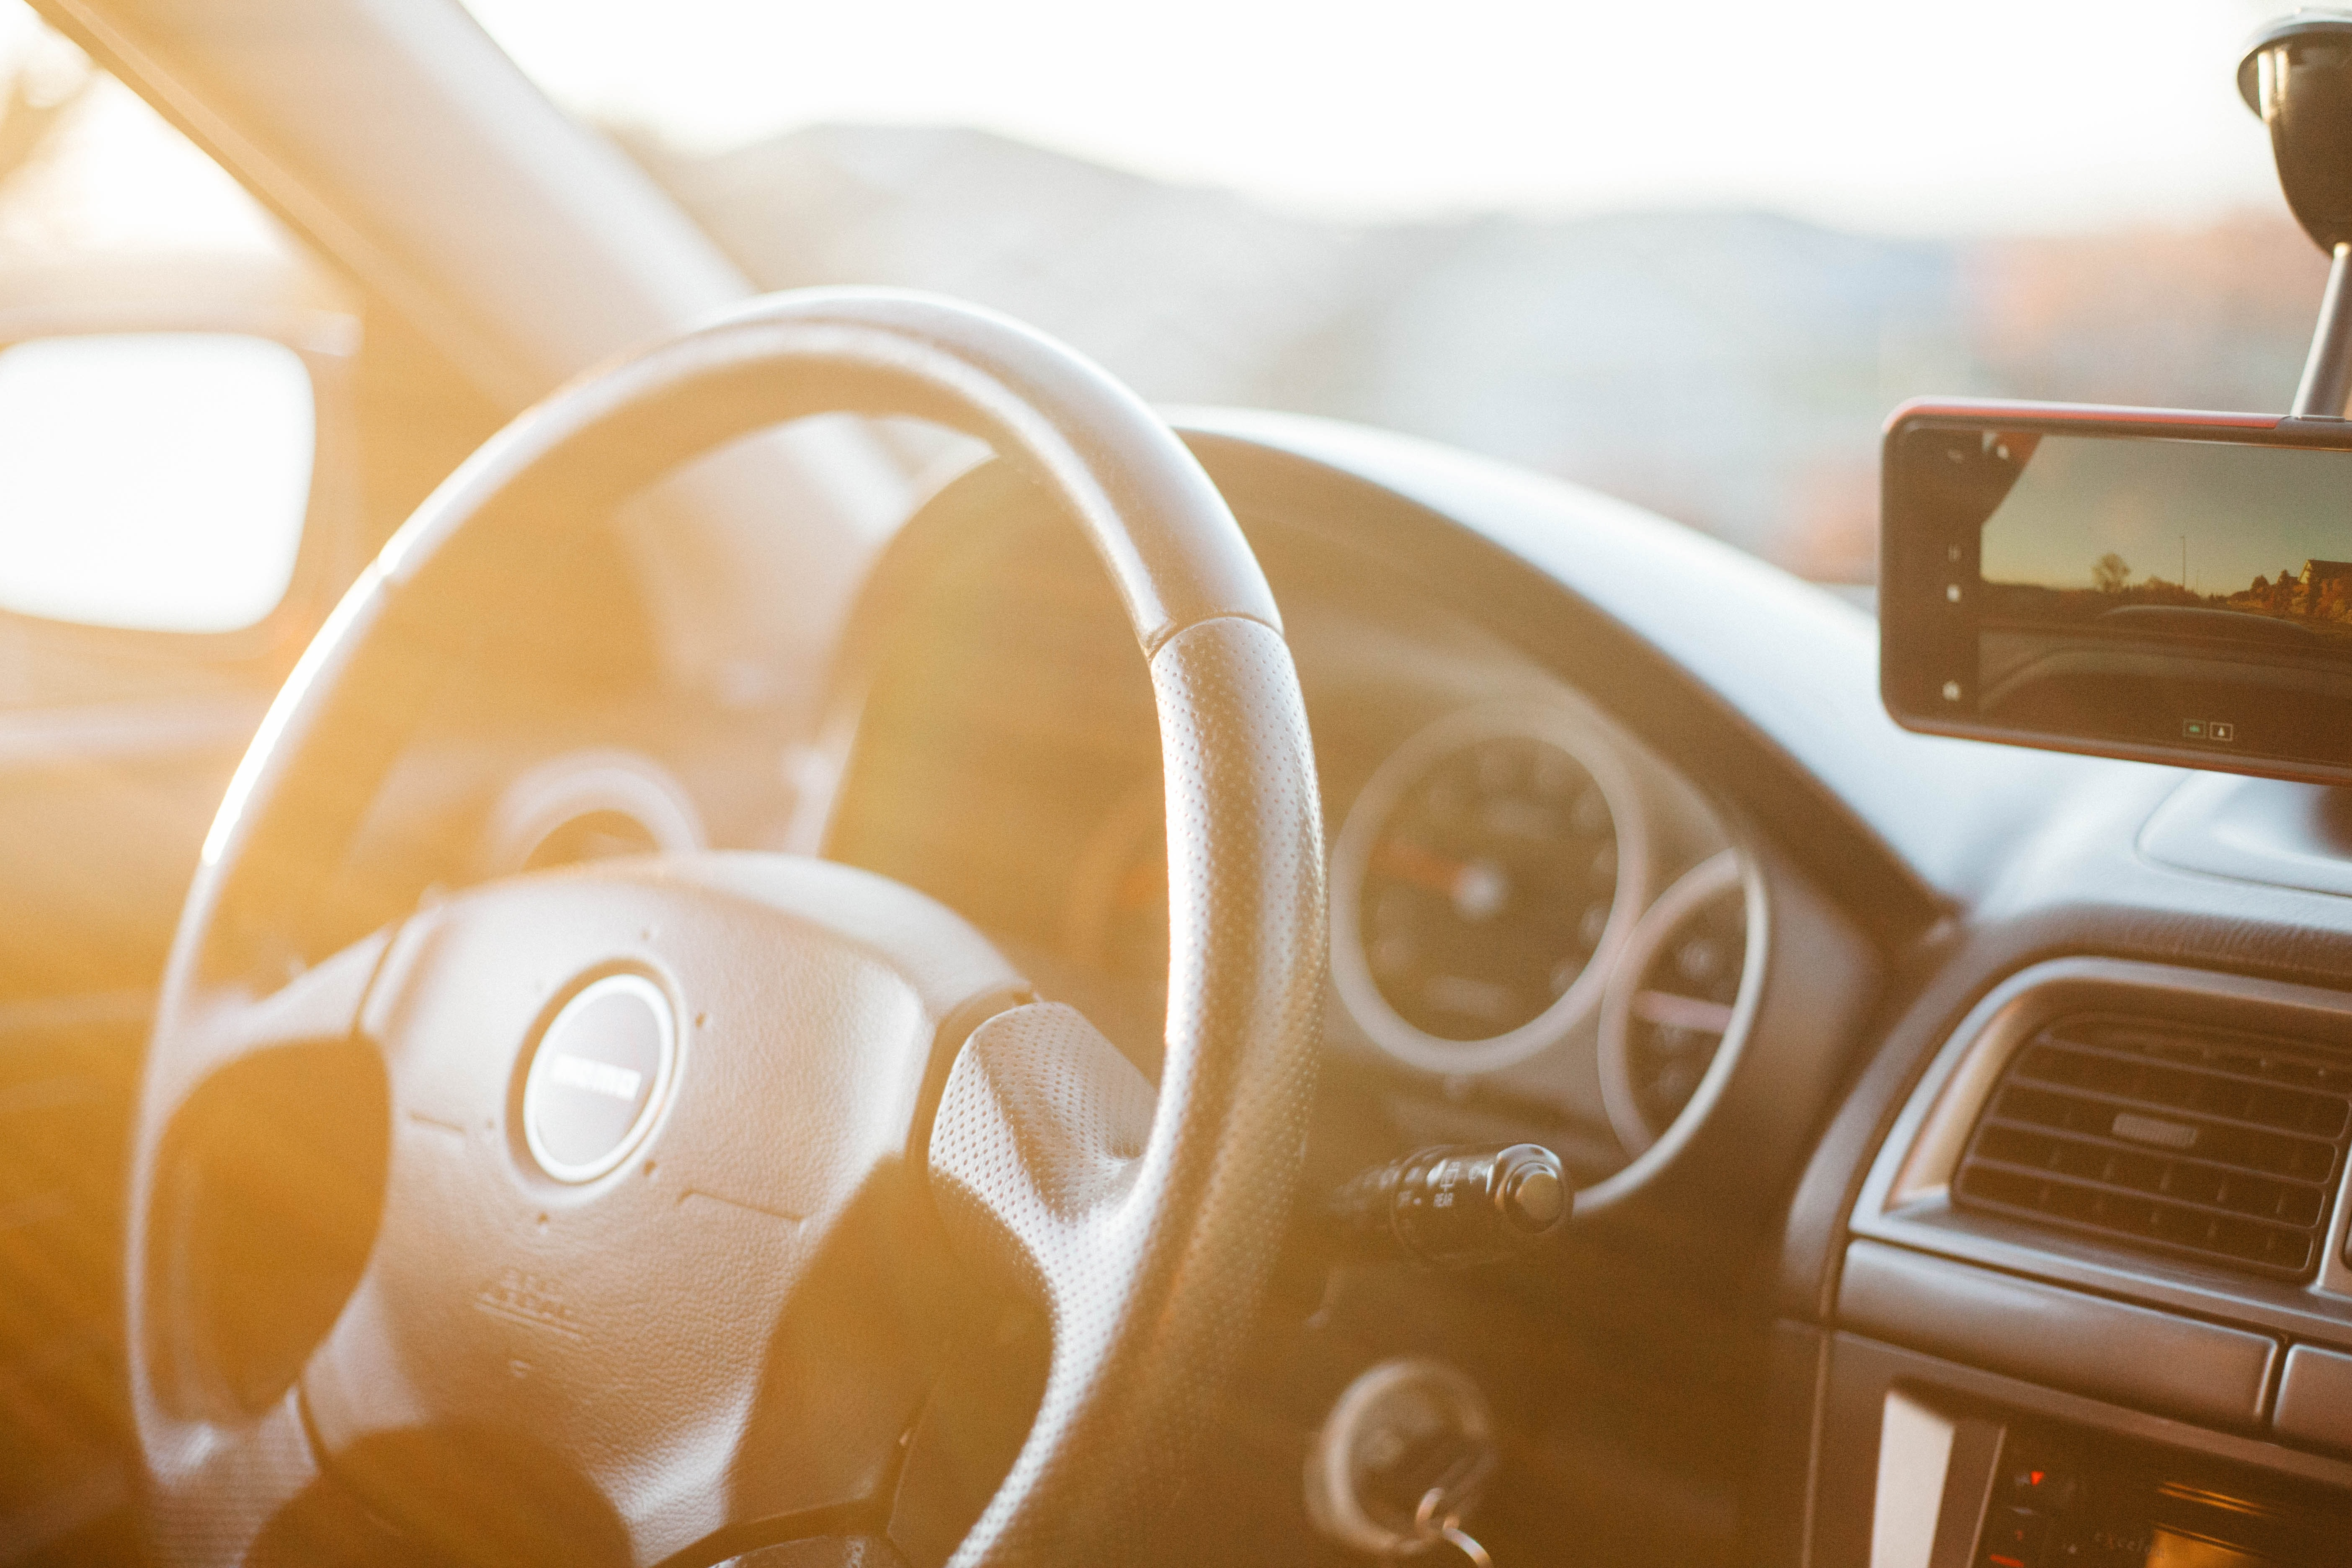 Sunlit steering wheel and dashboard of the car with the mobile phone attached to the windscreen in Bellingham